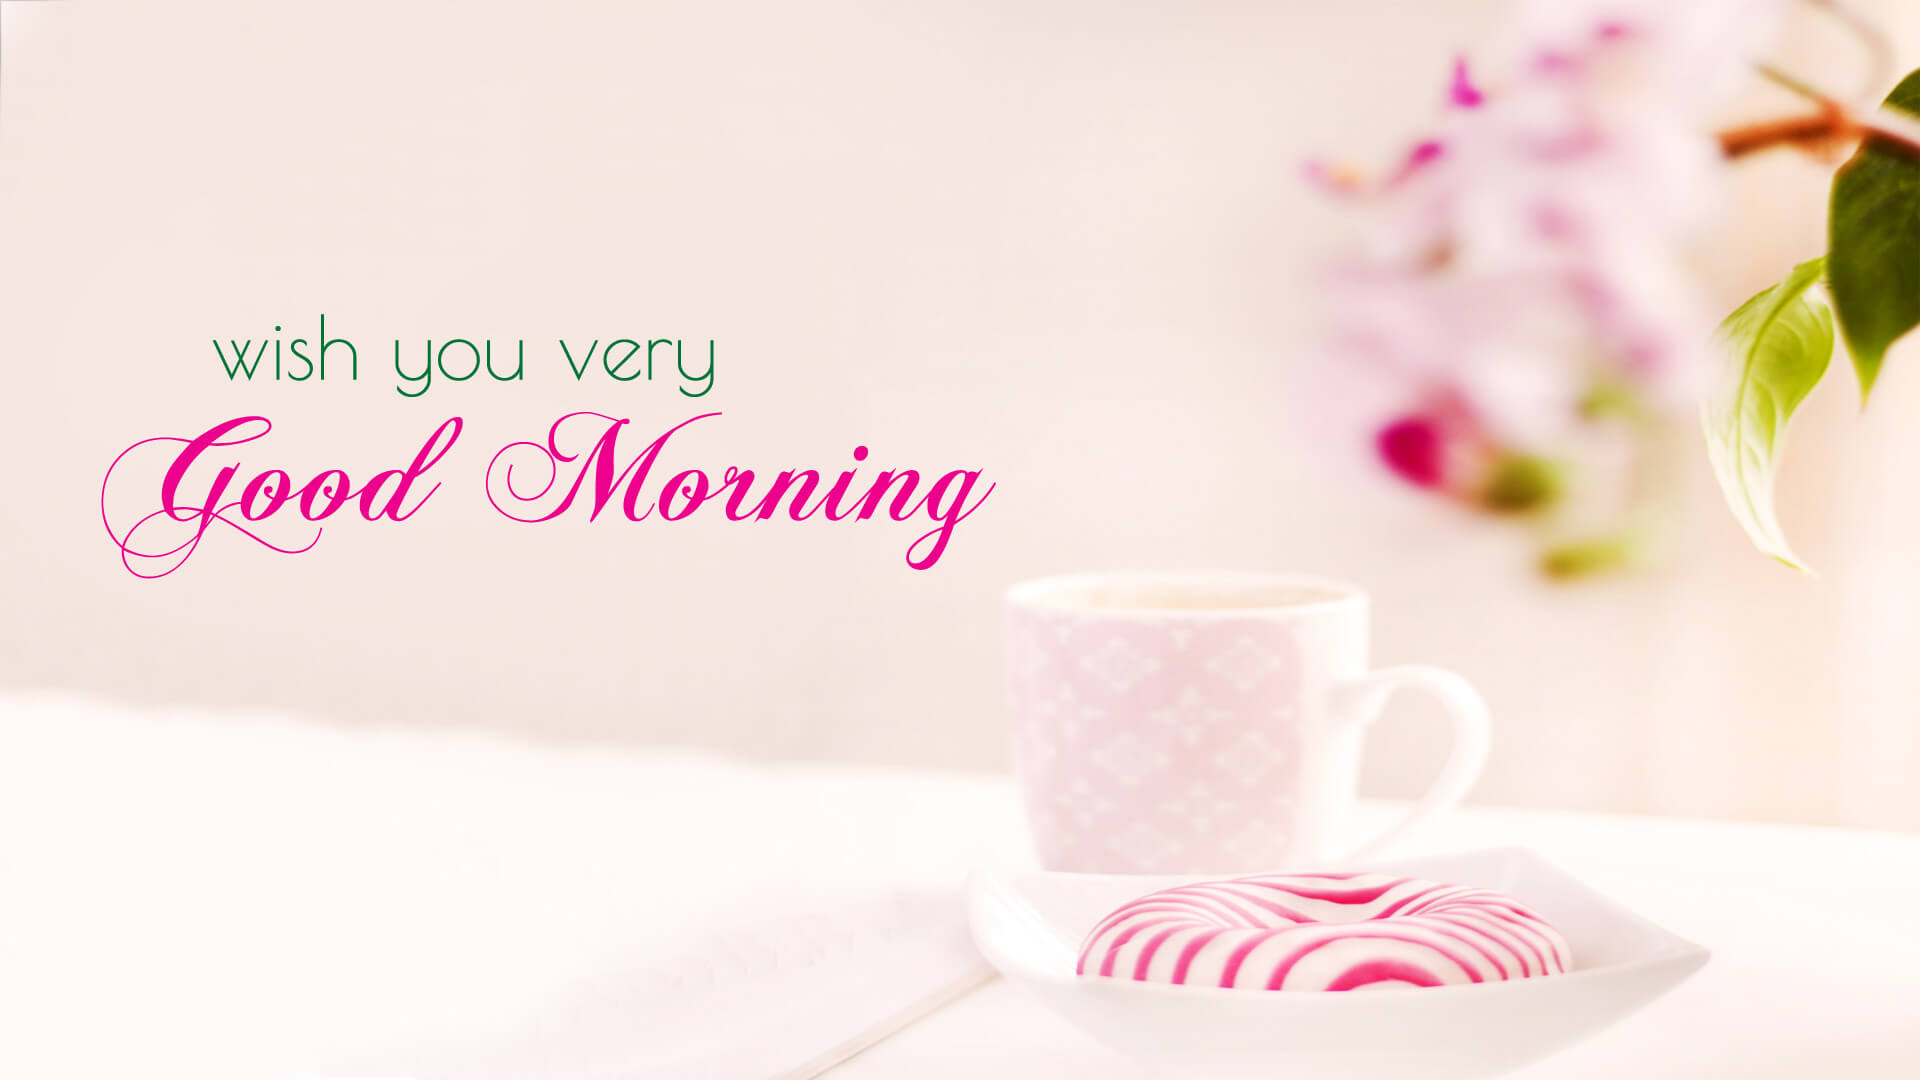 Lovely Good Morning SMS Messages for Him